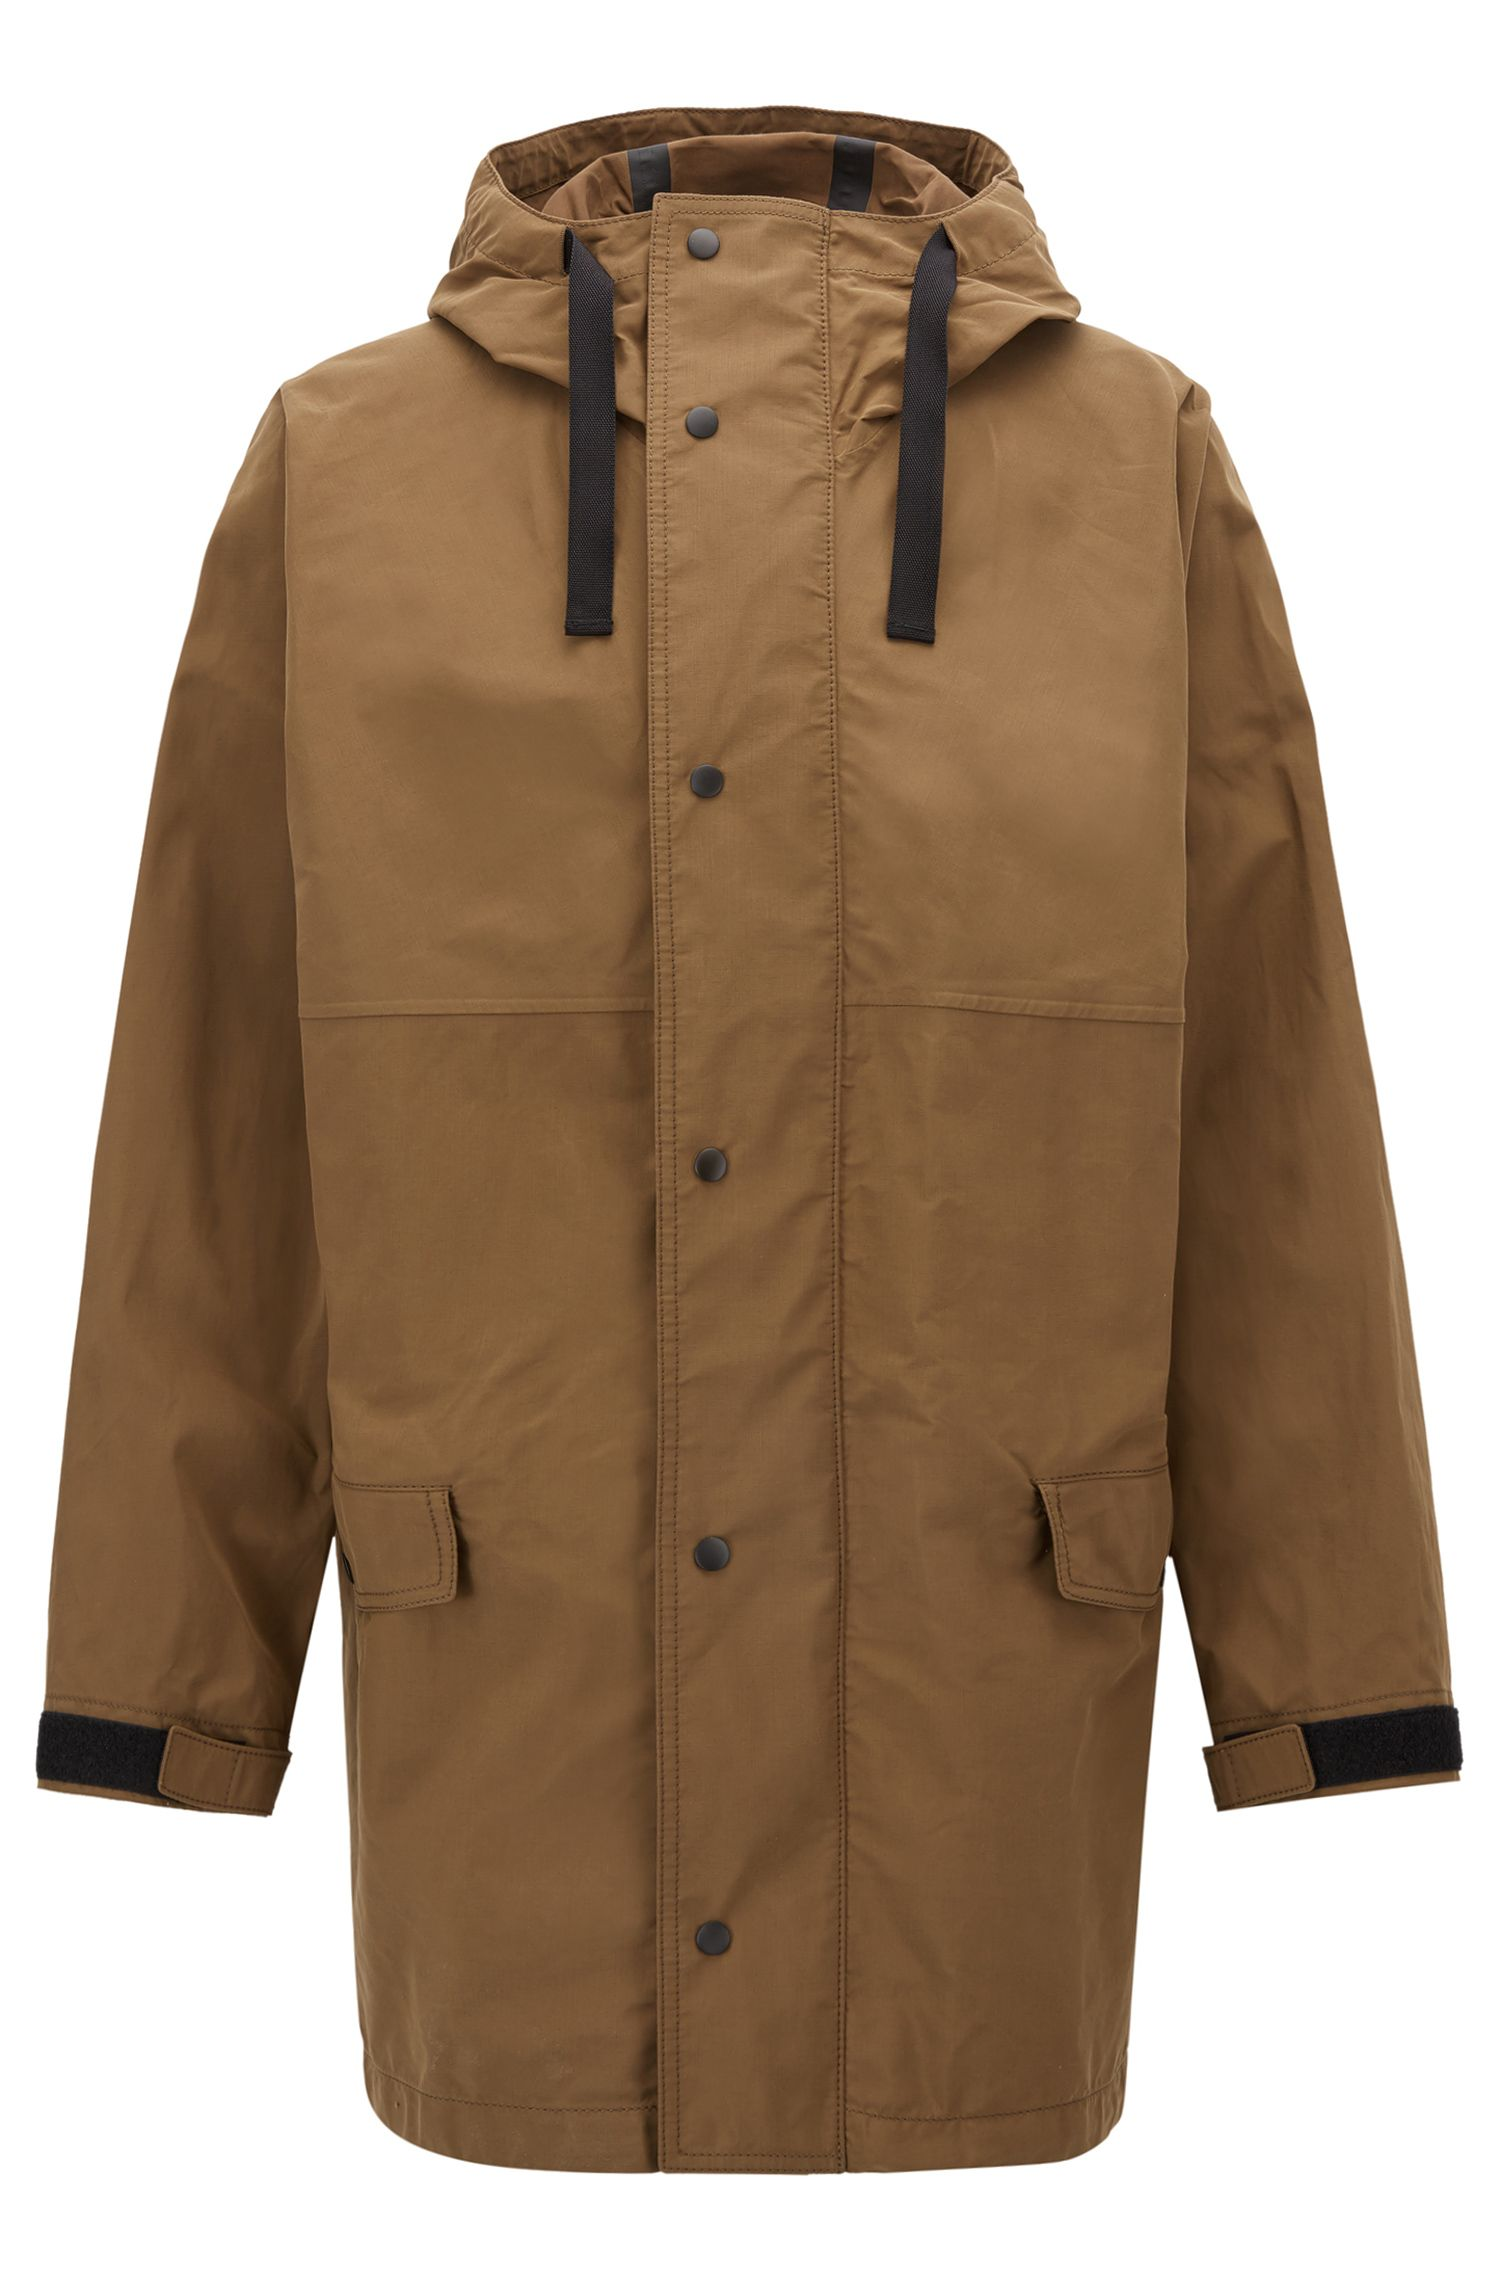 Oversized-fit parka in waxed canvas